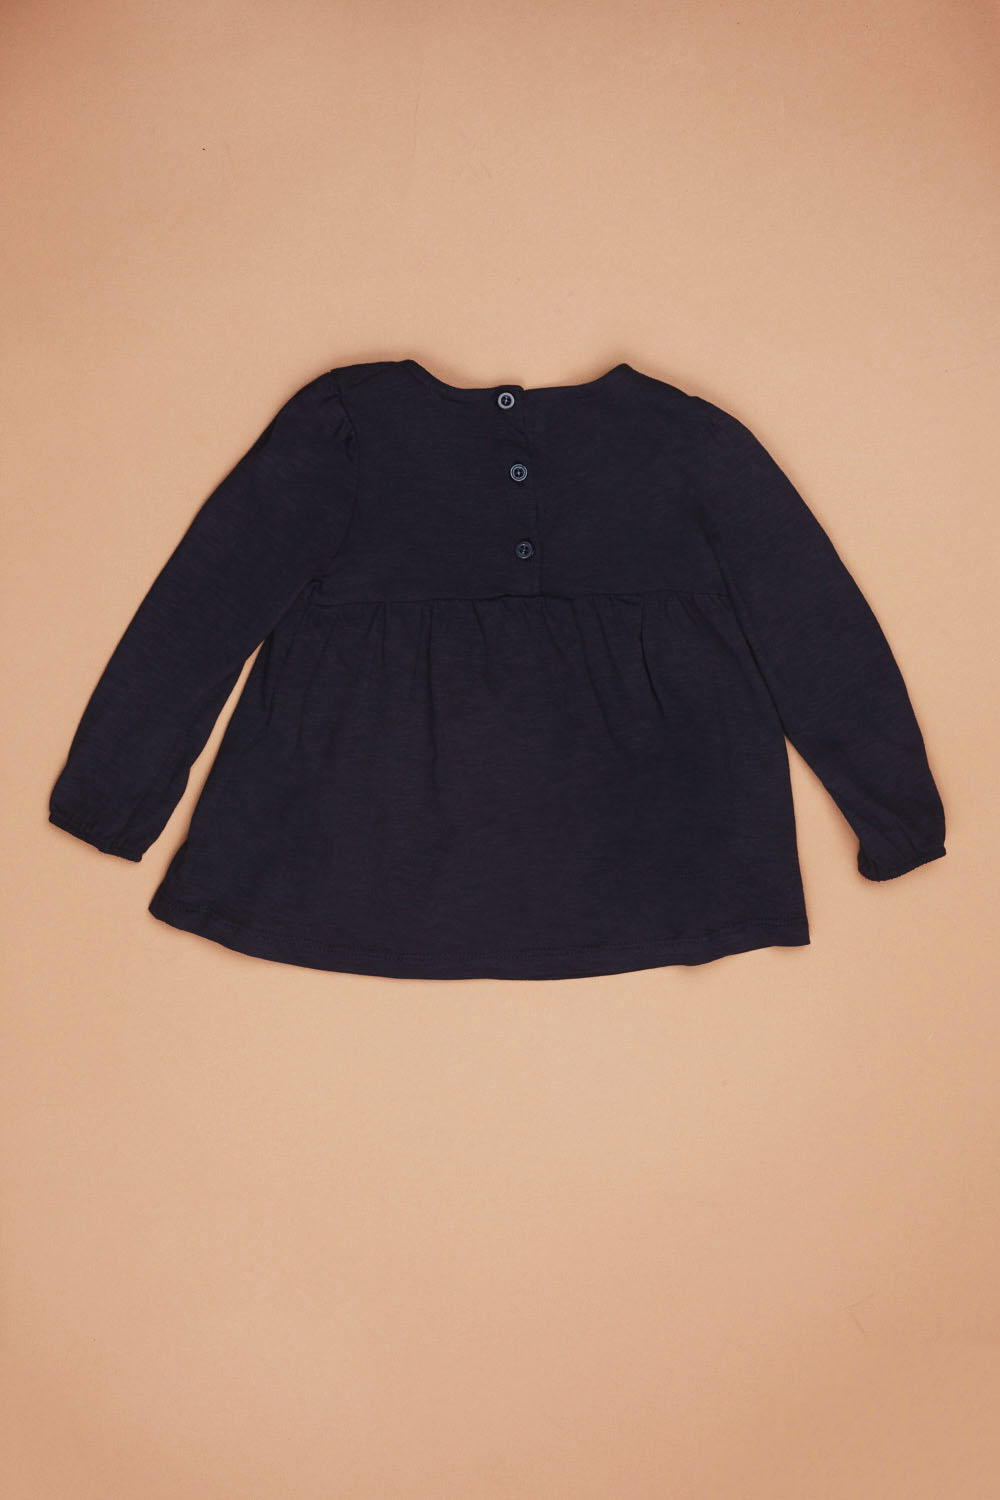 3f3018663 Embroidered Top And Leggings Set - Just £5